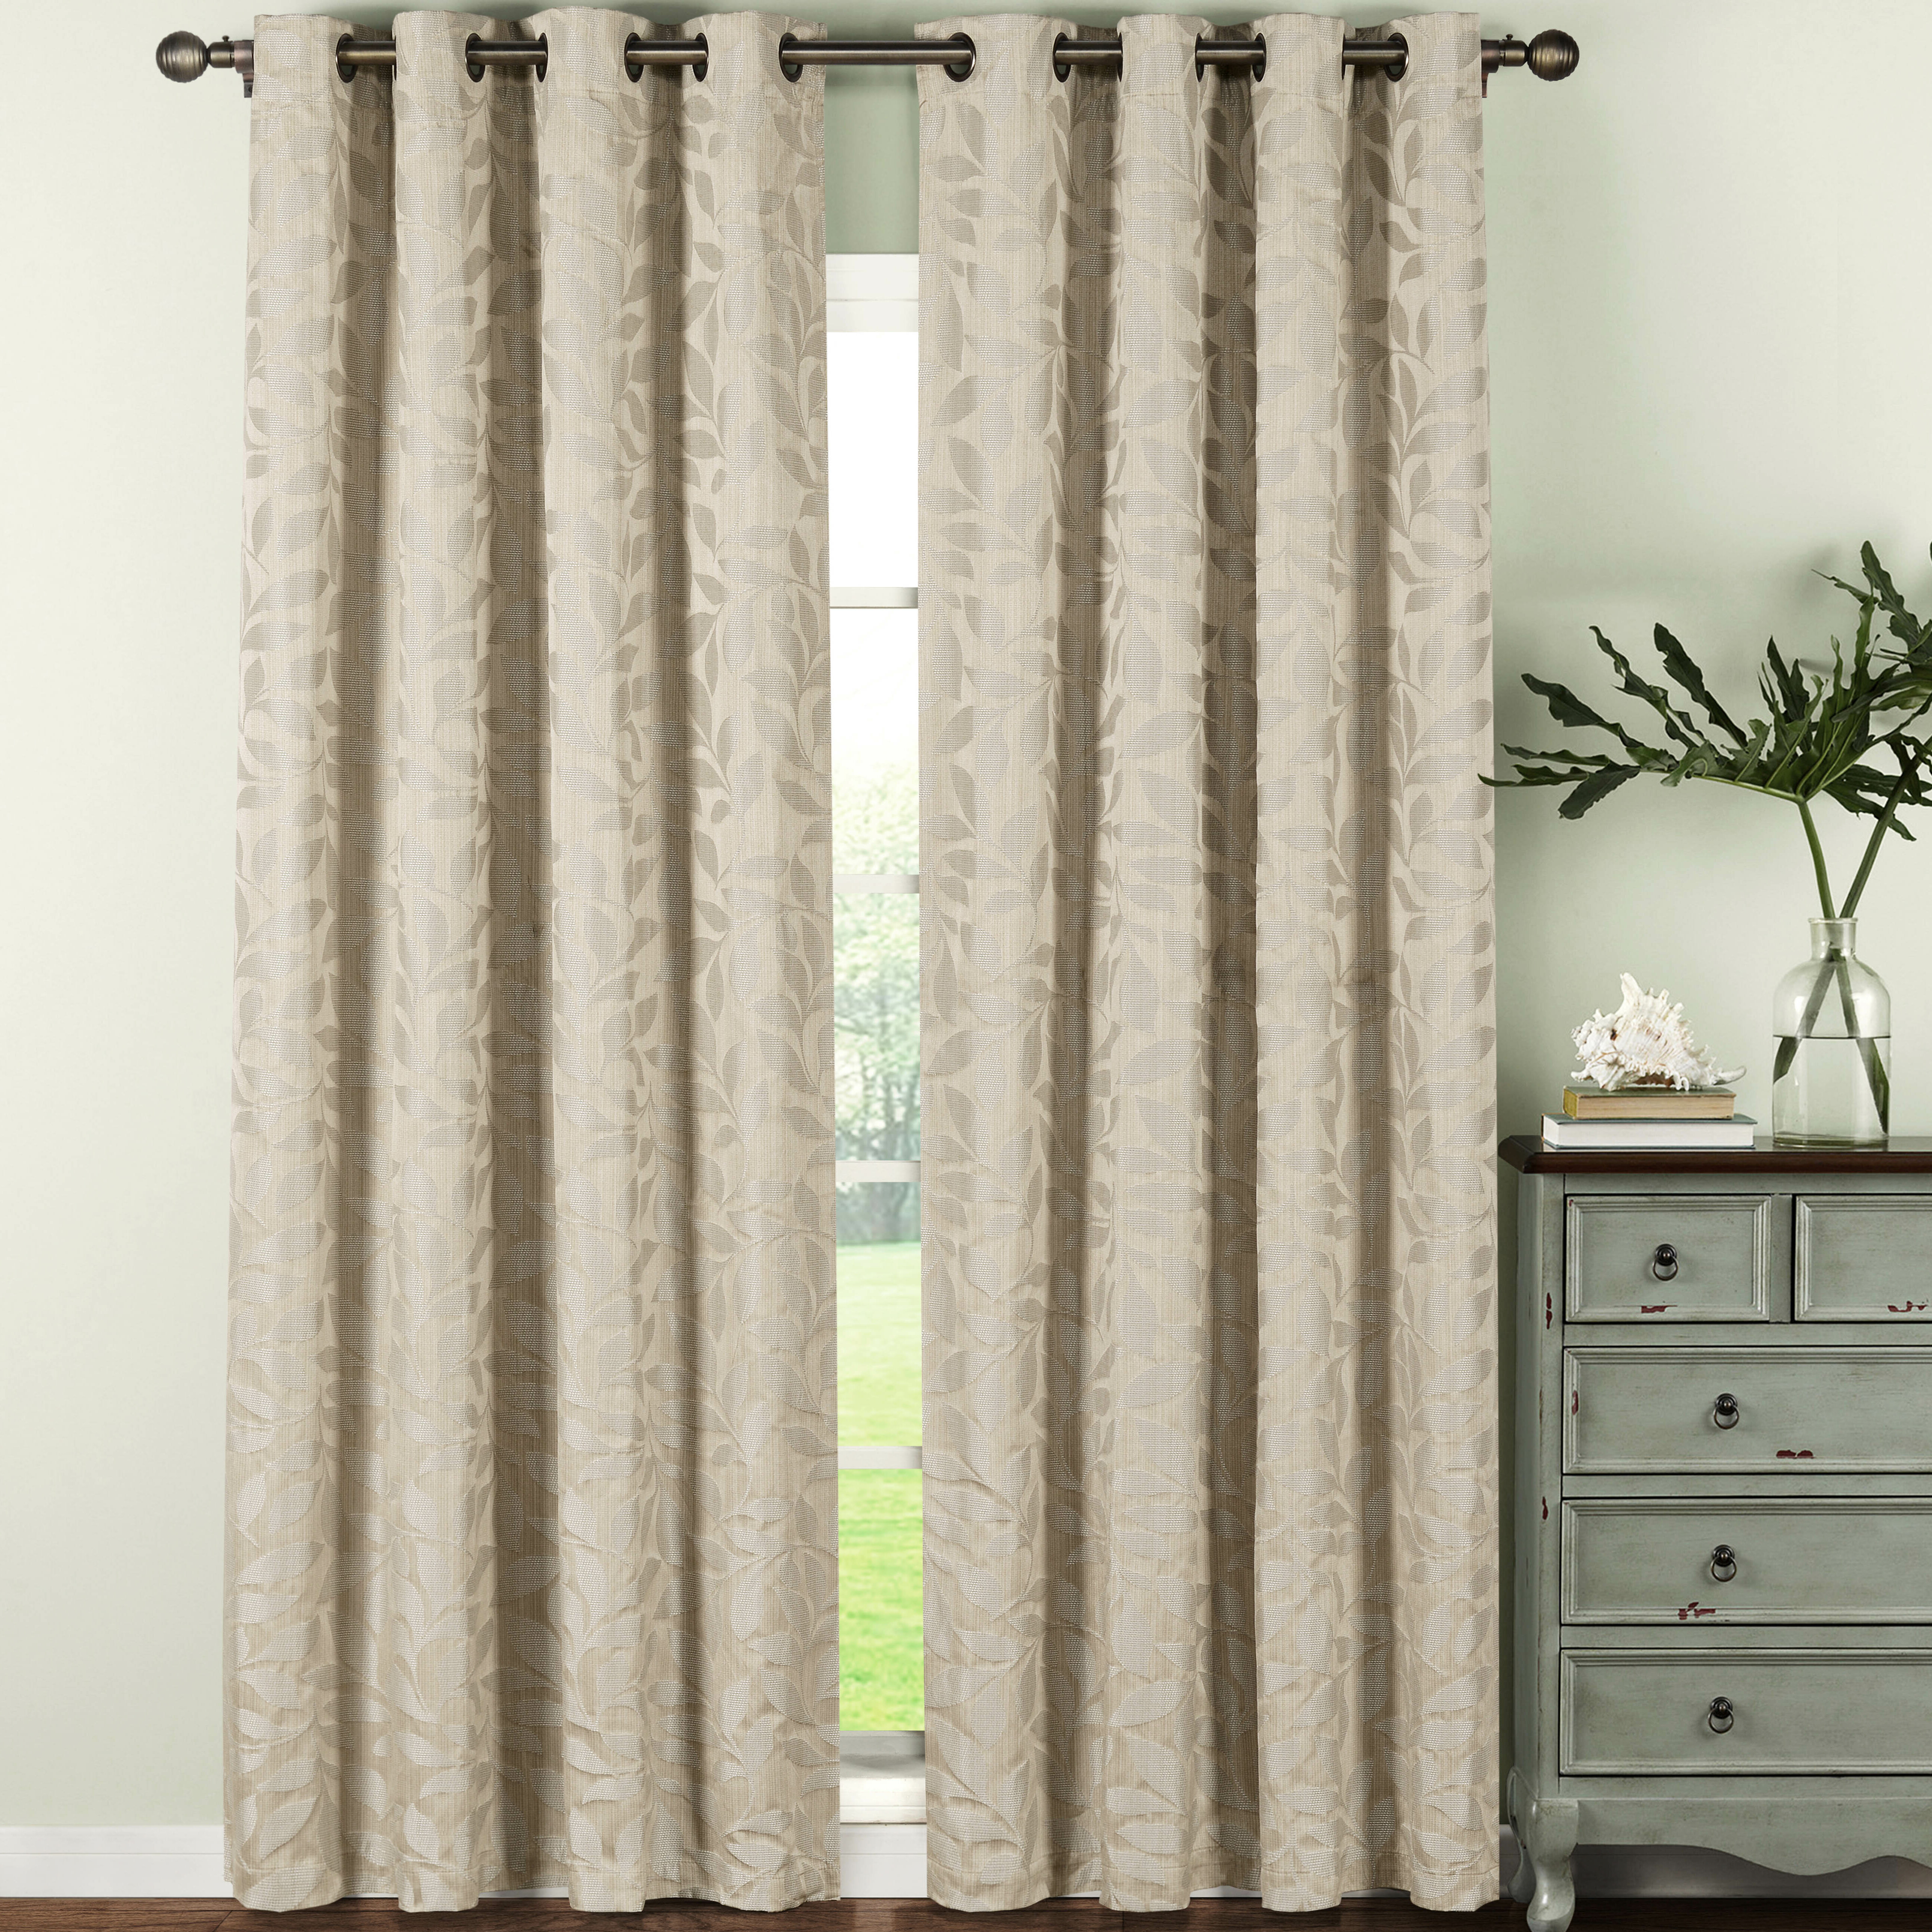 grommet panel tone two up energoresurs blinds the of blackout curtainl check curtain look window any curtains with dress sheer silver